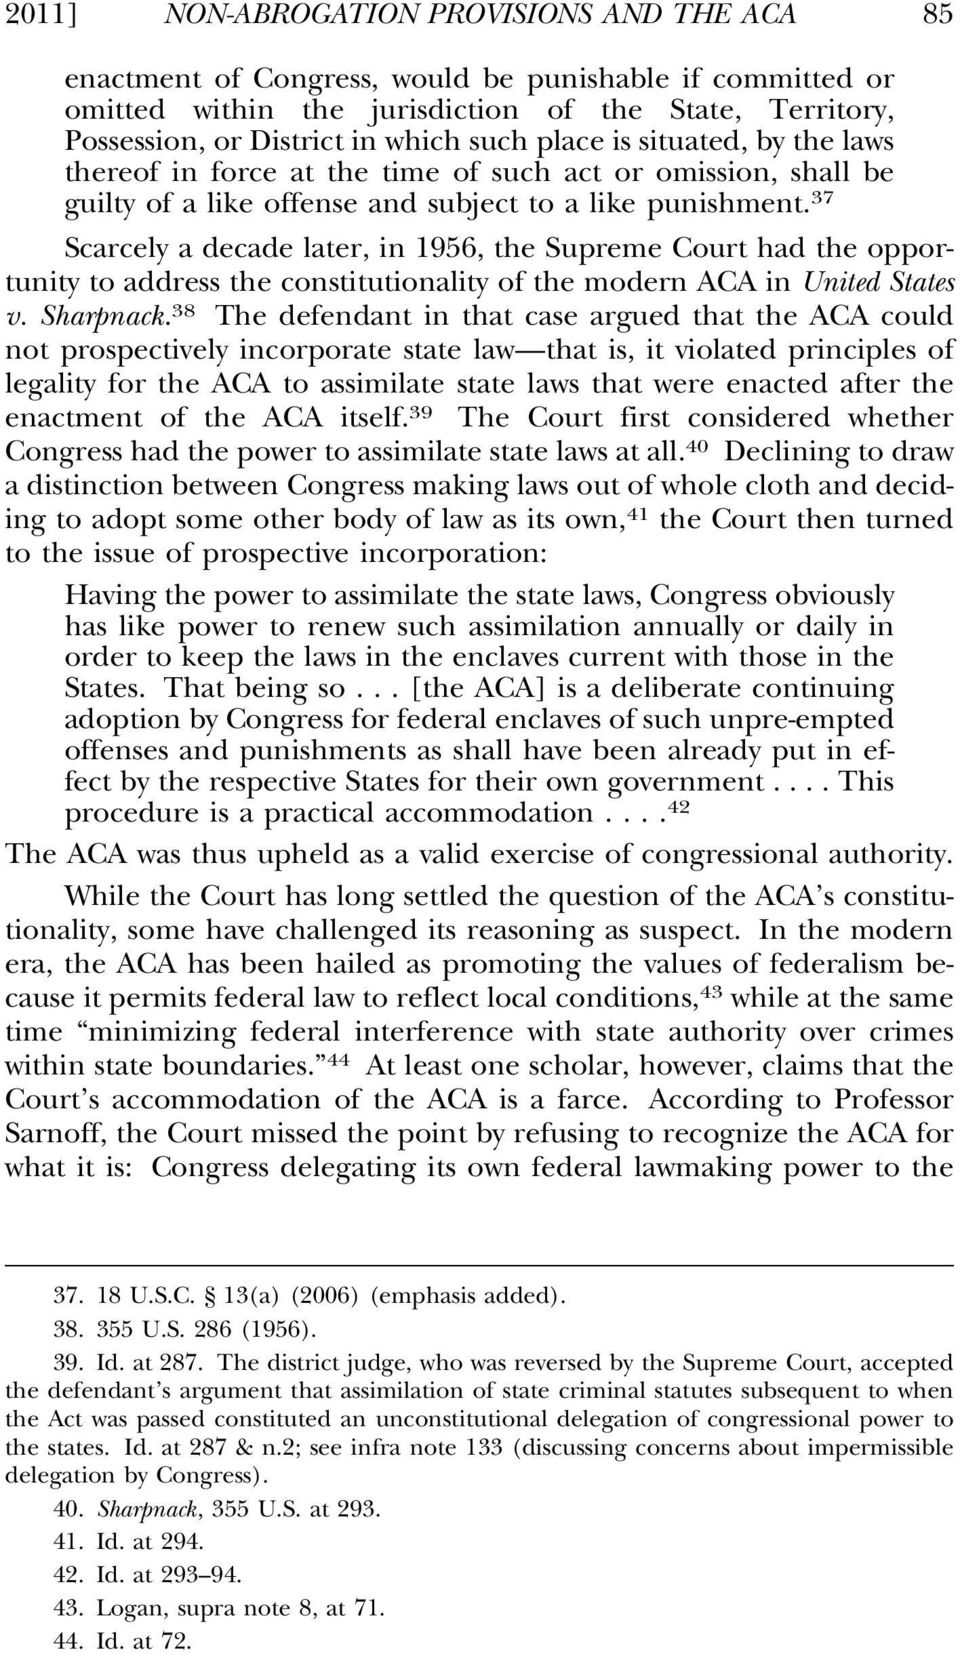 37 Scarcely a decade later, in 1956, the Supreme Court had the opportunity to address the constitutionality of the modern ACA in United States v. Sharpnack.